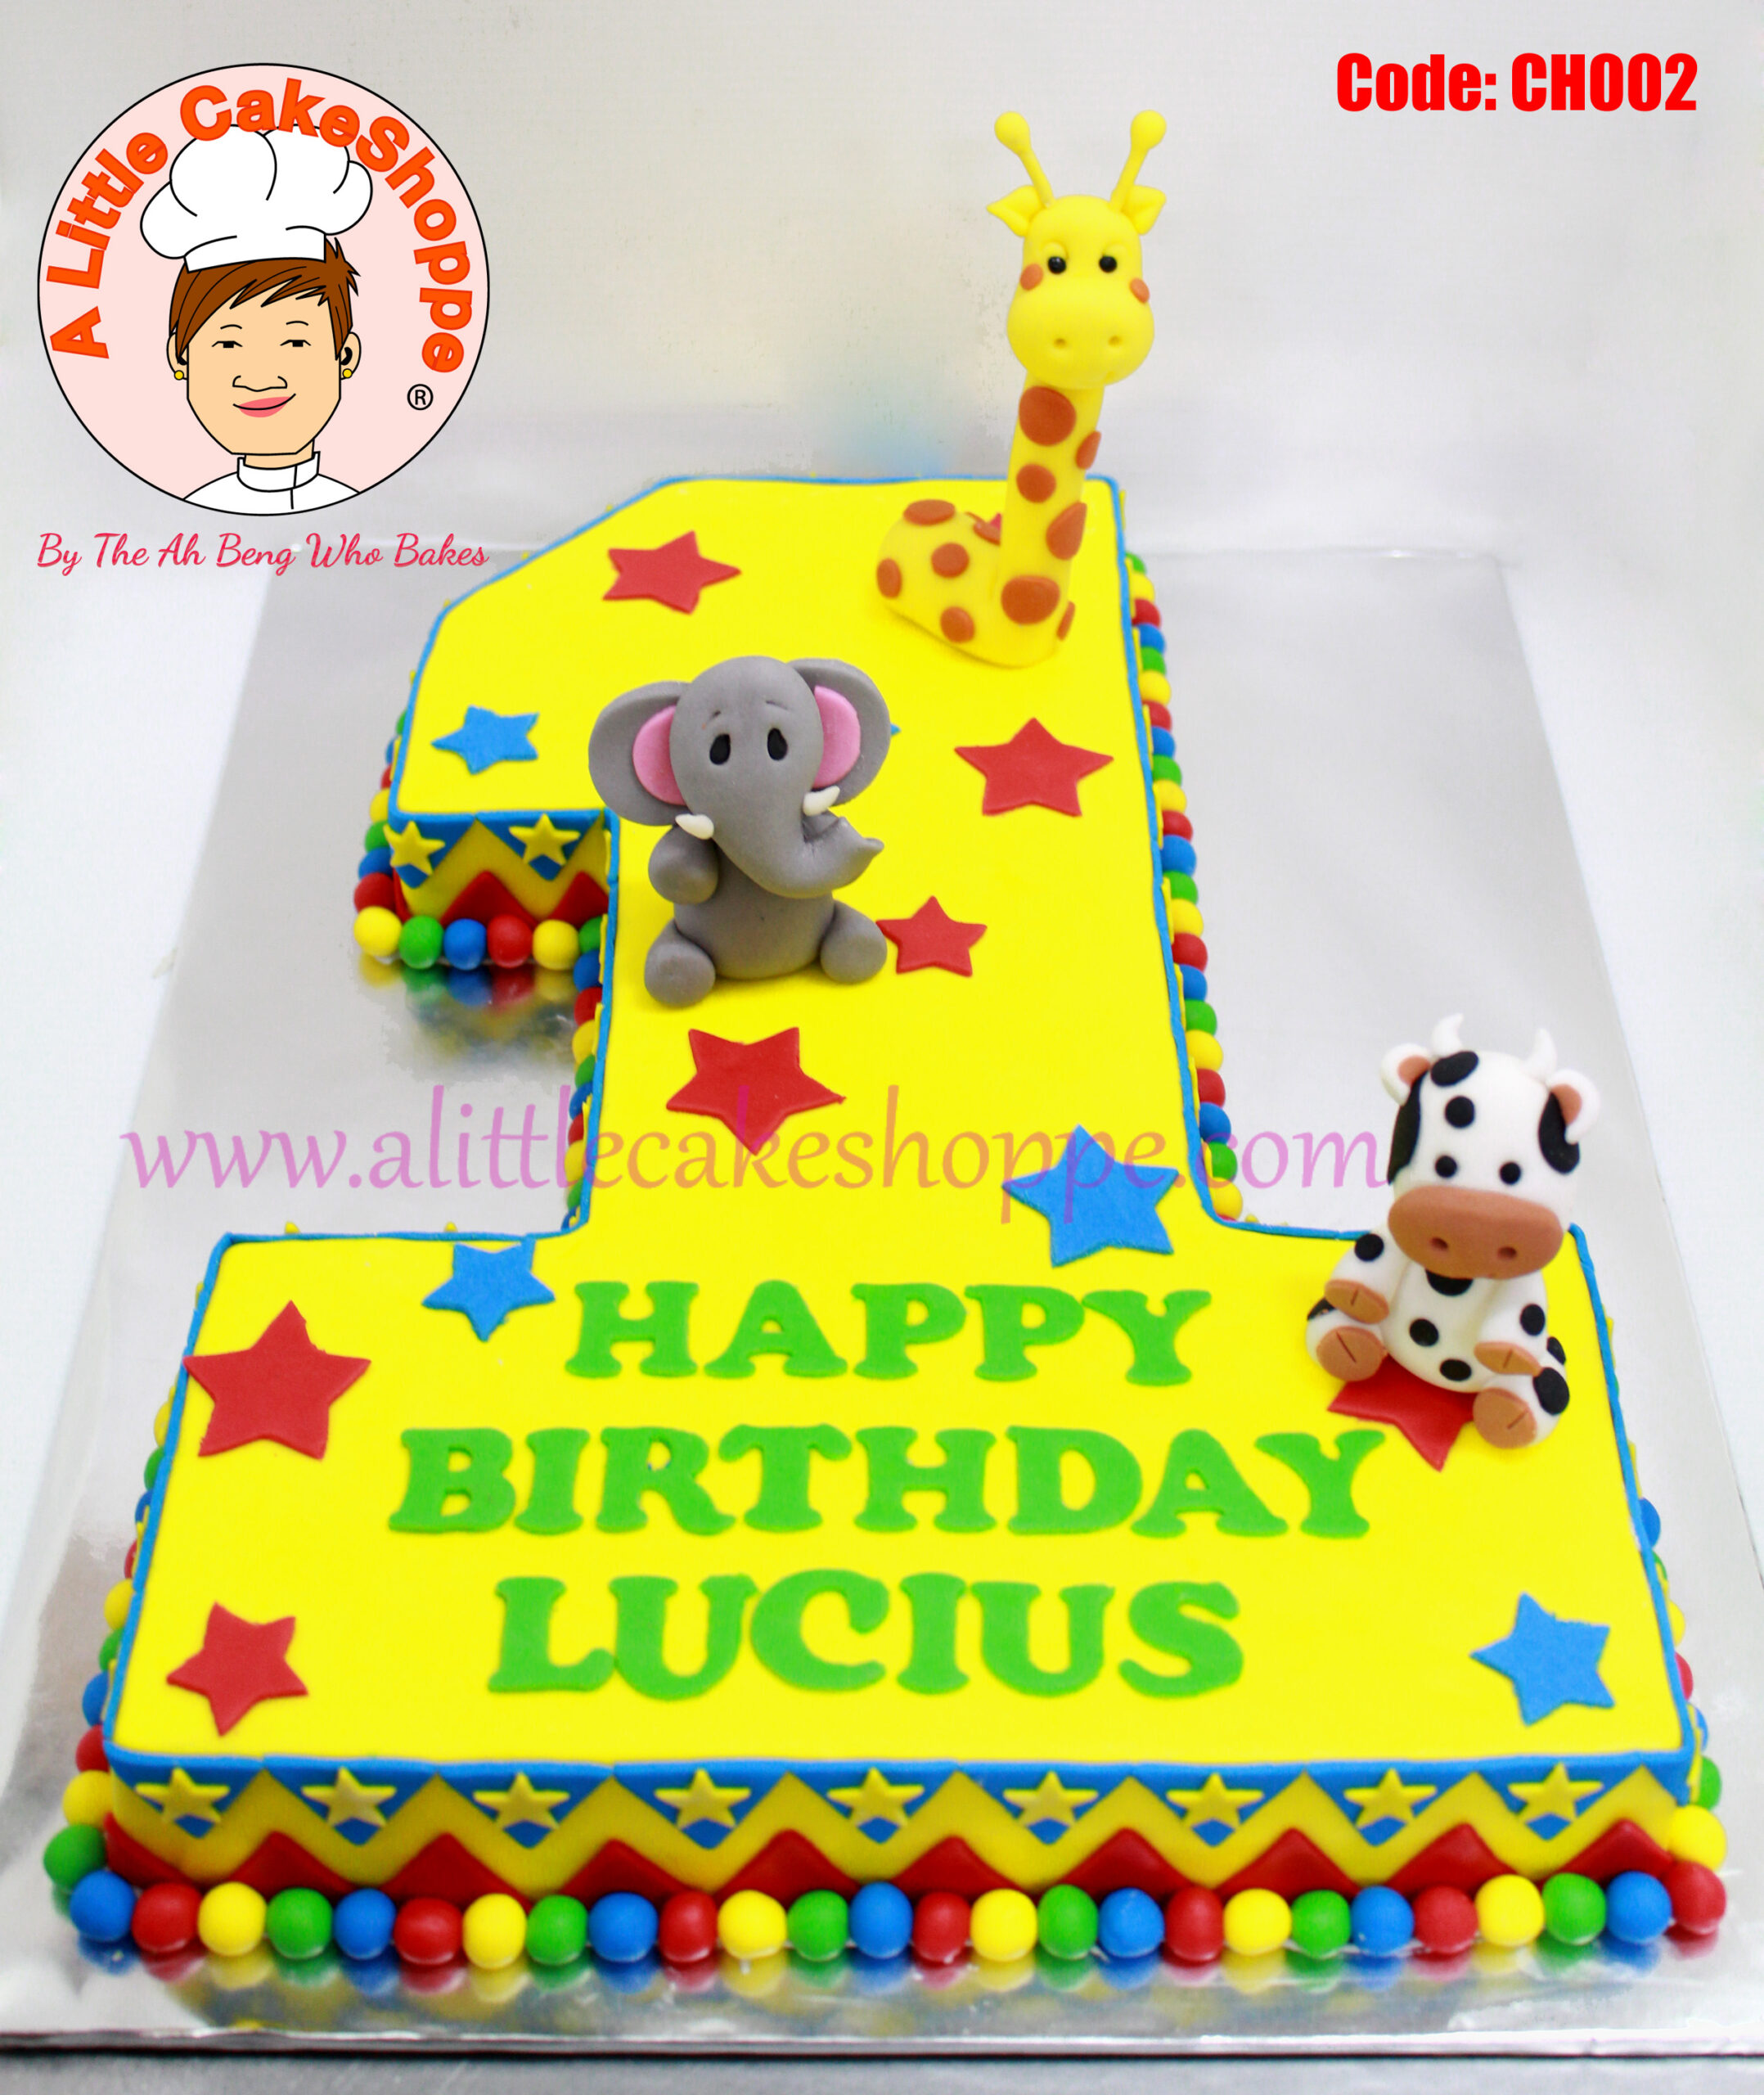 Best Customised Cake Shop Singapore custom cake 2D 3D birthday cake cupcakes desserts wedding corporate events anniversary 1st birthday 21st birthday fondant fresh cream buttercream cakes alittlecakeshoppe a little cake shoppe compliments review singapore bakers SG cake shop cakeshop ah beng who bakes circus animal